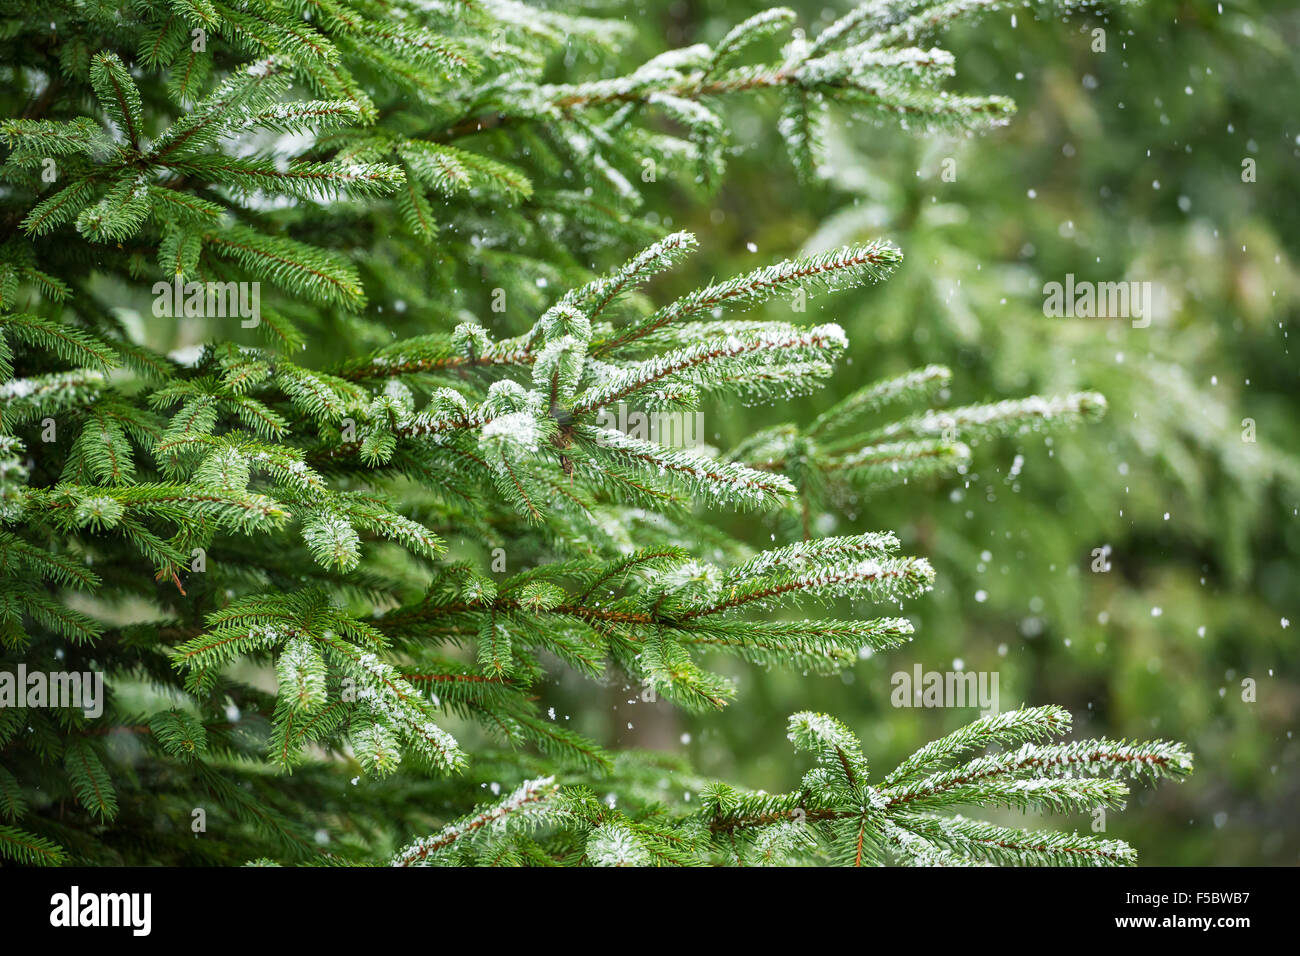 Snow fir tree branches under snowfall. Winter detail - Stock Image